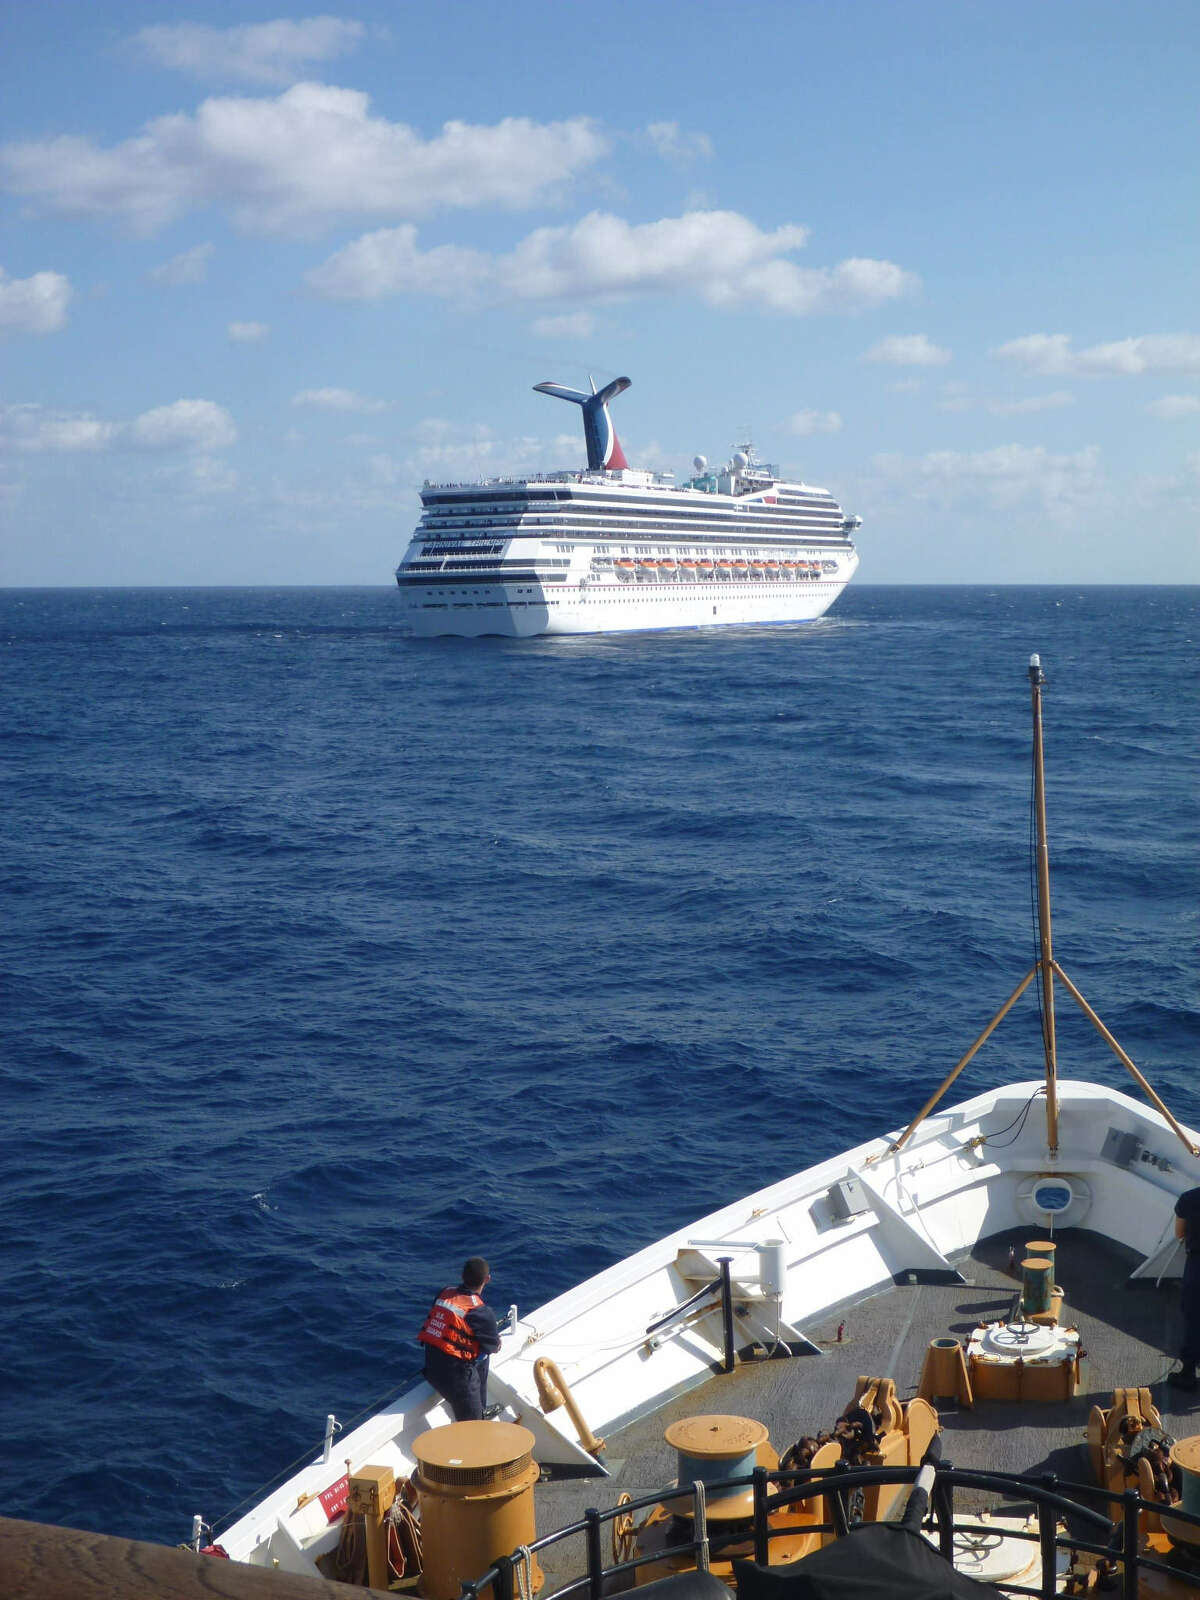 About 30 local Jazzercise enthusiasts and a dozen Churchill High alumni celebrating a bachelor party are stuck aboard the Carnival Triumph cruise ship. It was disabled by an engine room fire Sunday, leaving 4,200 people stranded in the Gulf of Mexico.